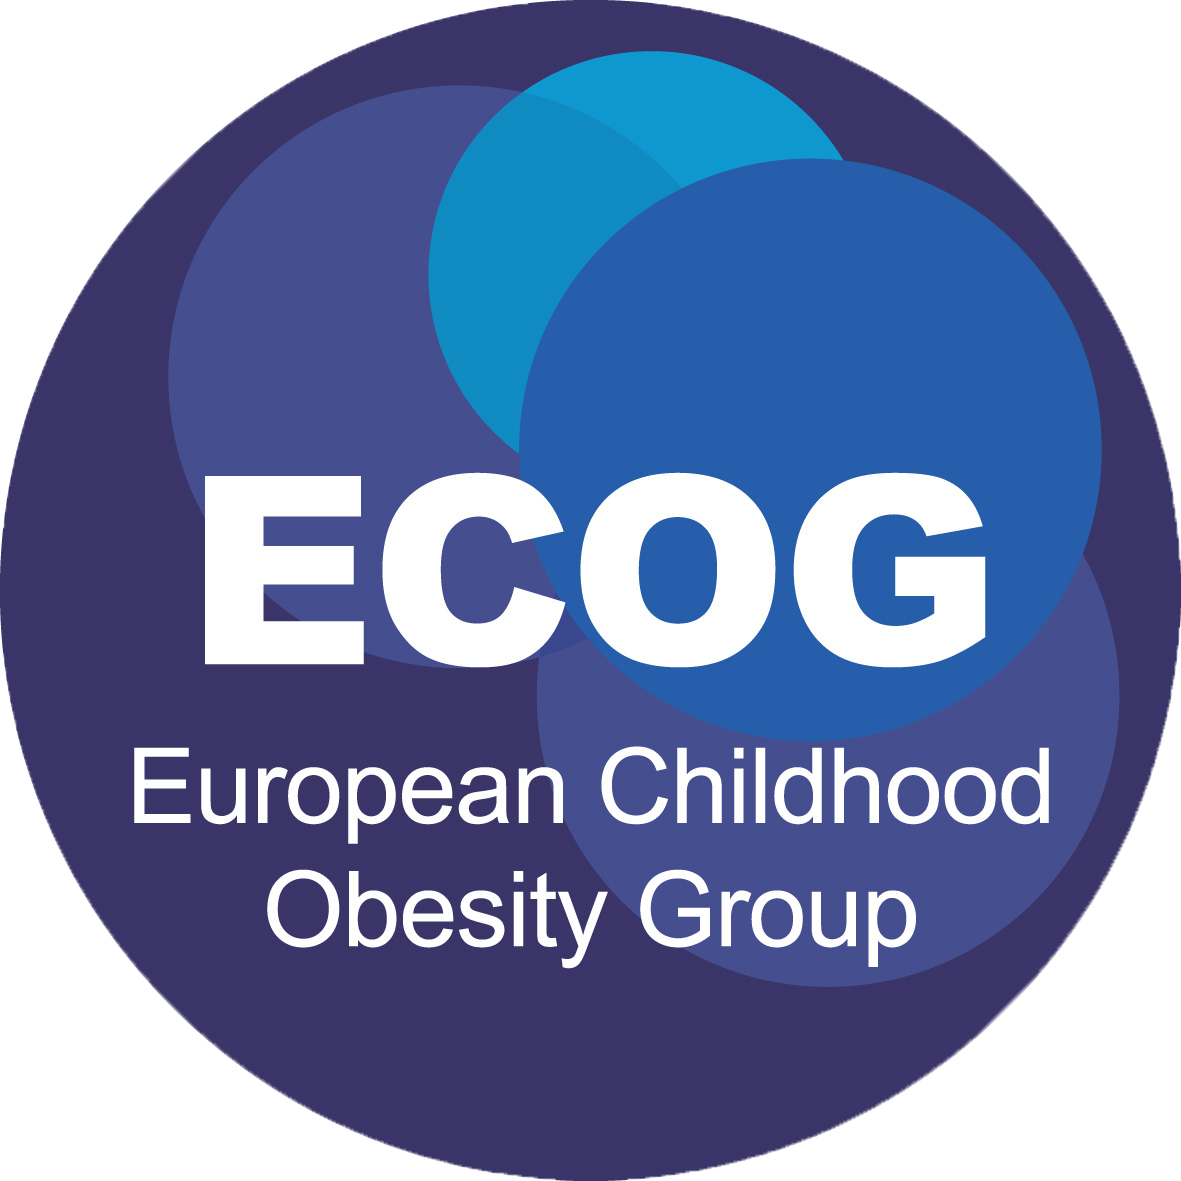 European Childhood Obesity Group